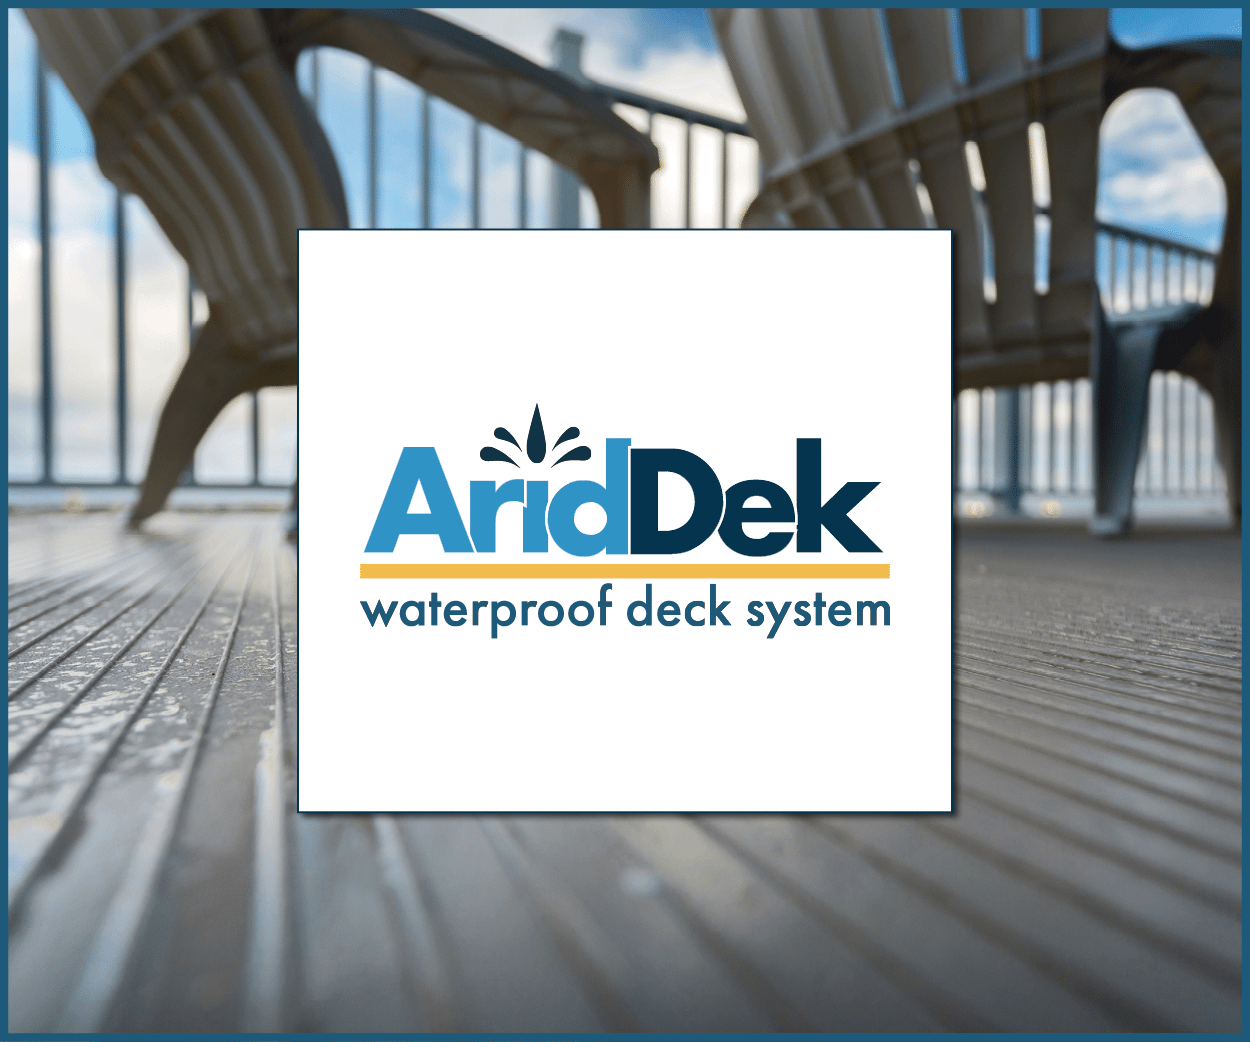 AridDek aluminum decking boards square logo